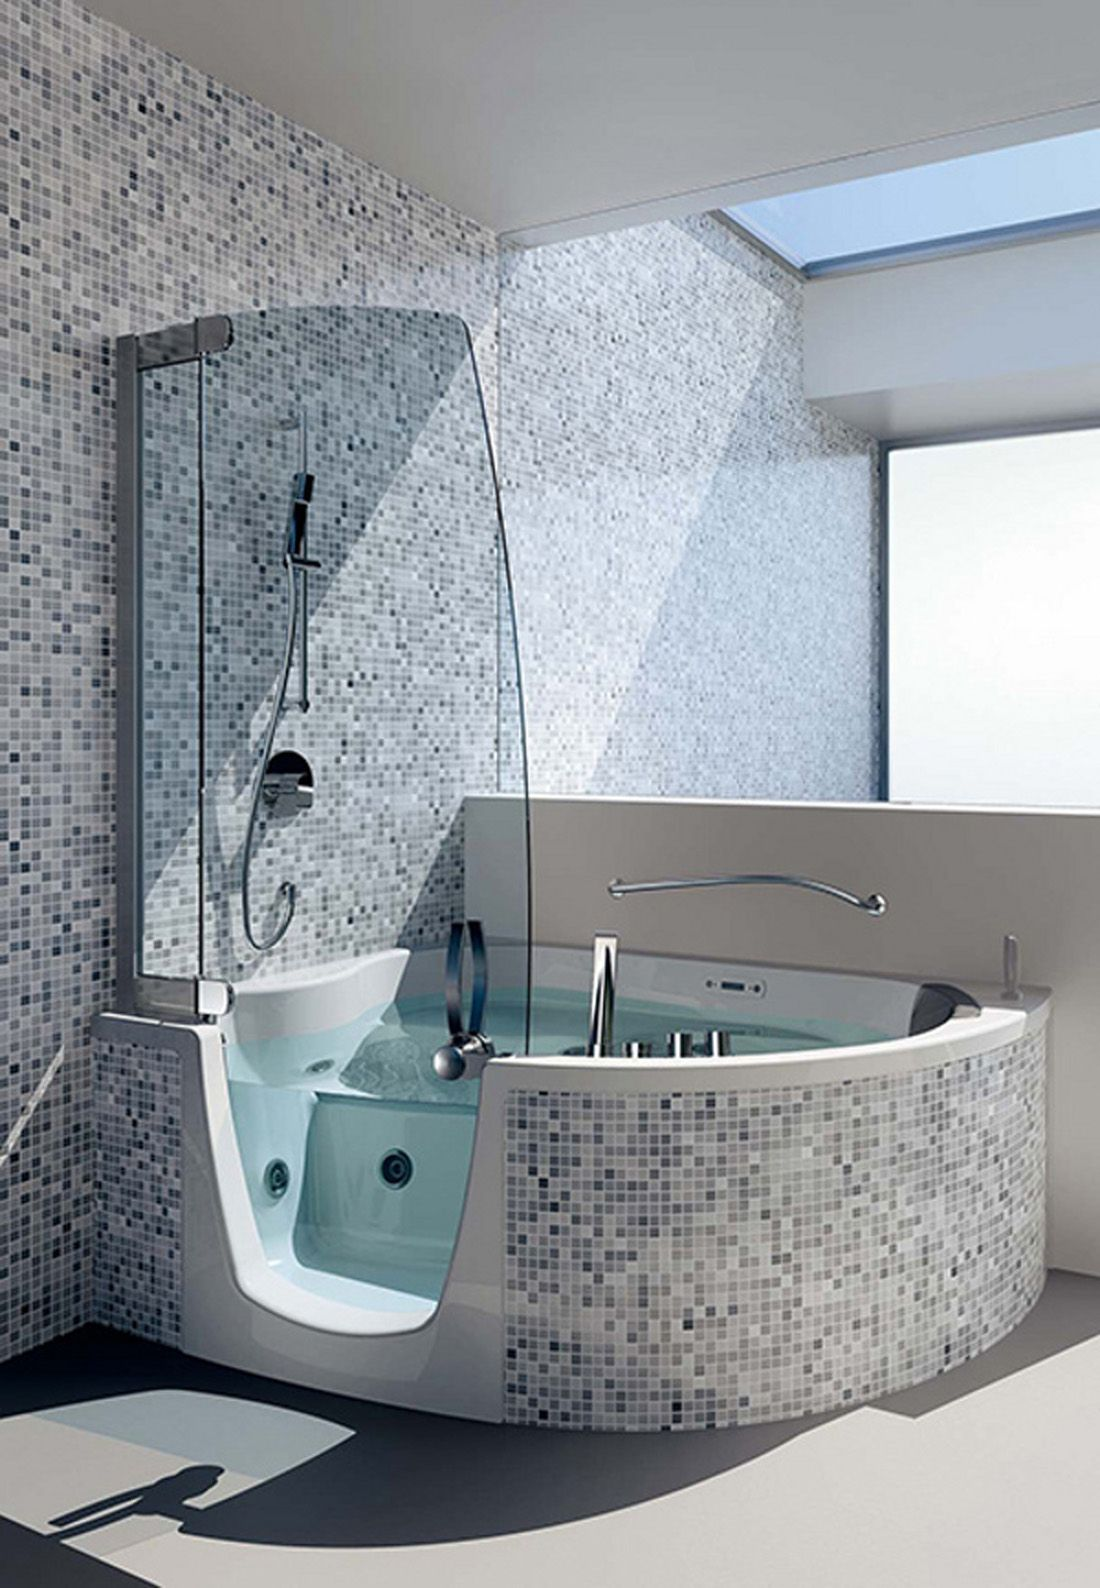 bathroom guam bathtubs image bathtub for combo of shower collection jetted design tub extra deep modern bisita